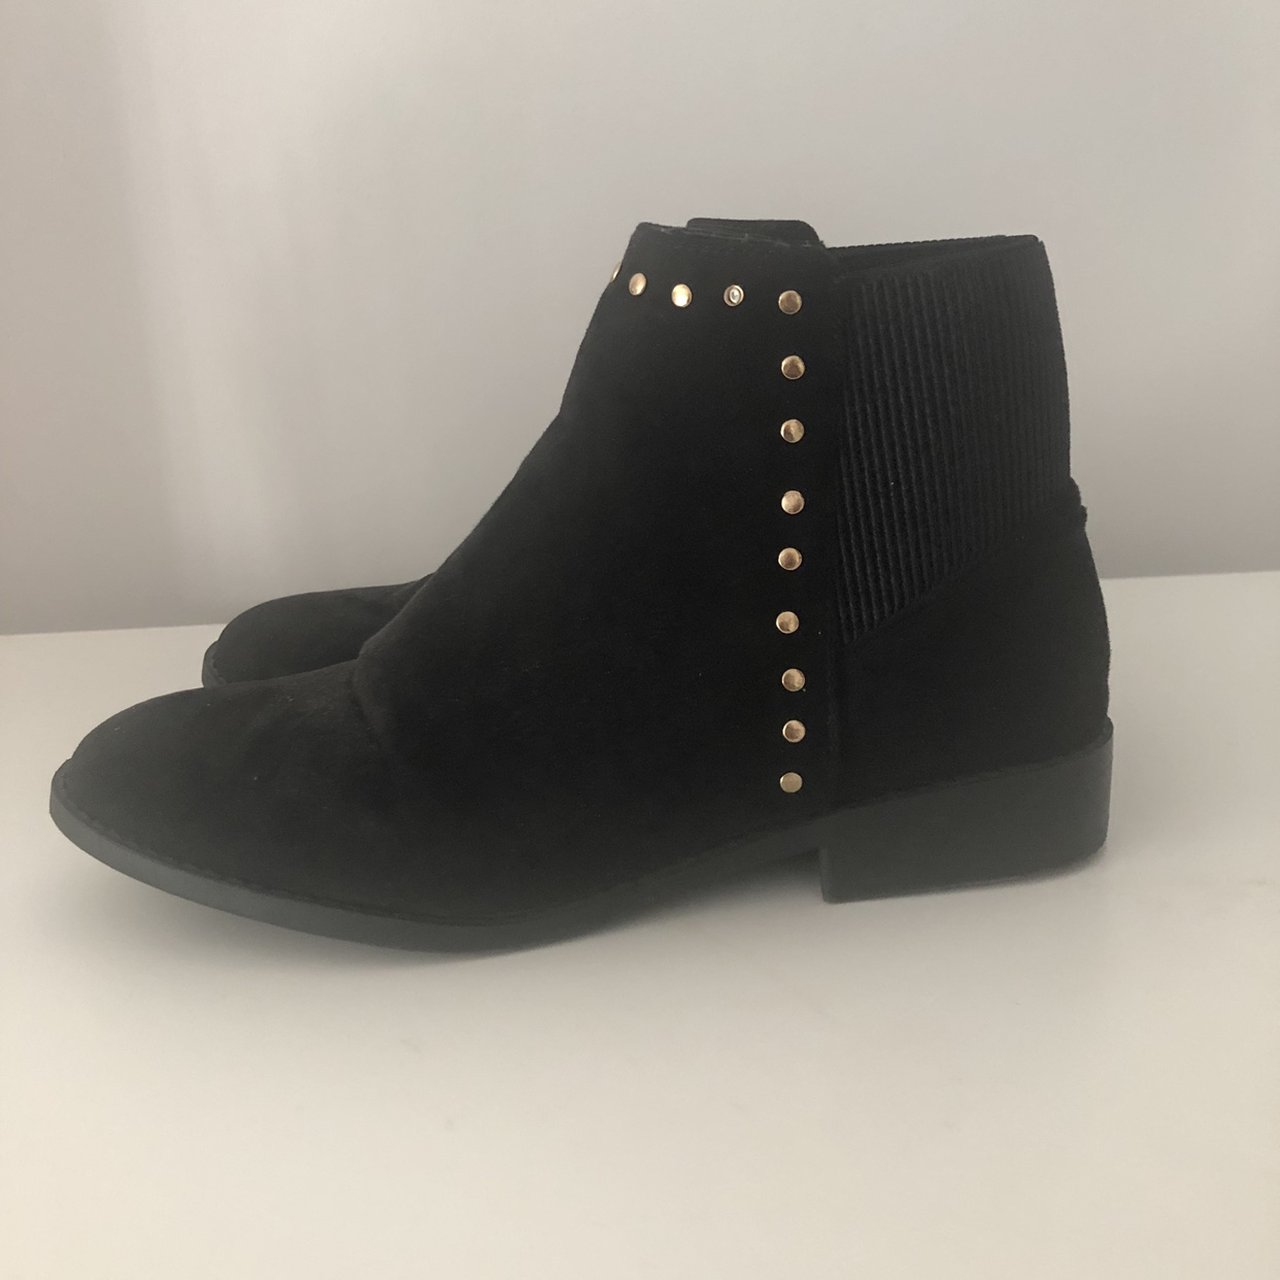 UK4 Wide Fit Chelsea boots